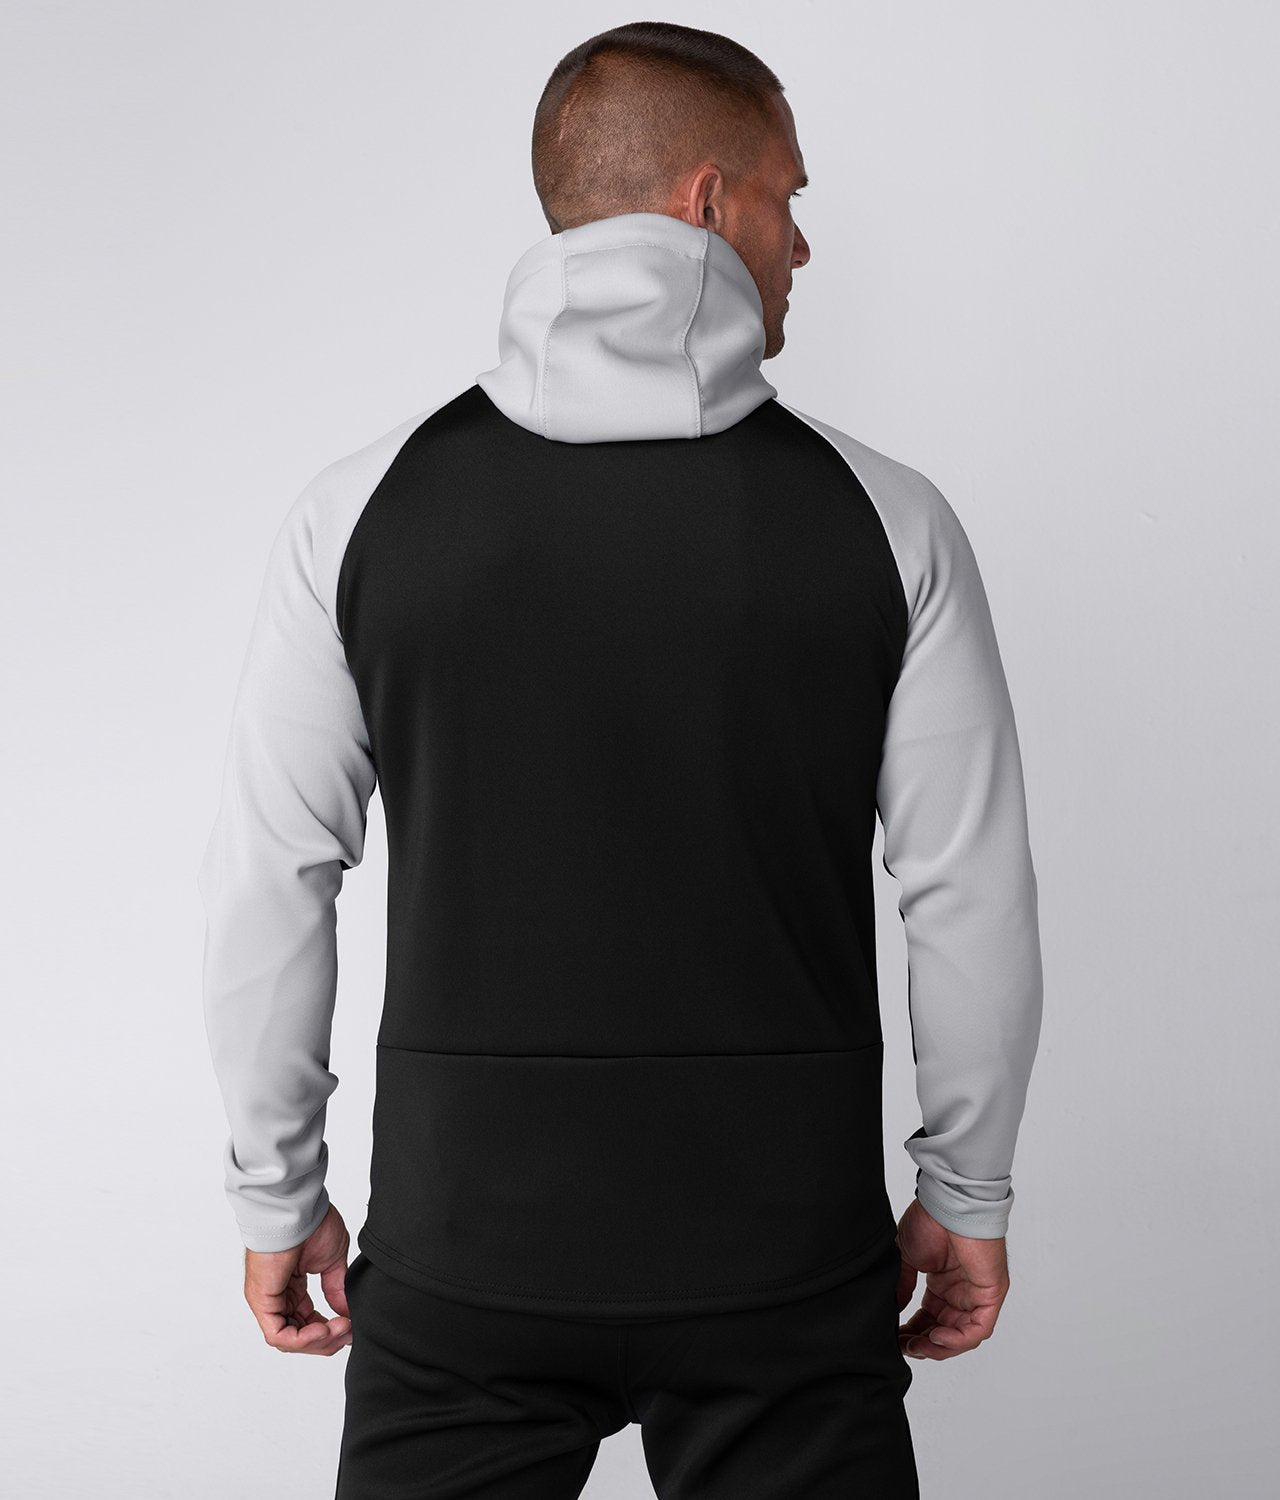 Born Tough United Kingdom Momentum Side-Pocket Drawstrings Gray/Black Gym Workout Hoodie for Men